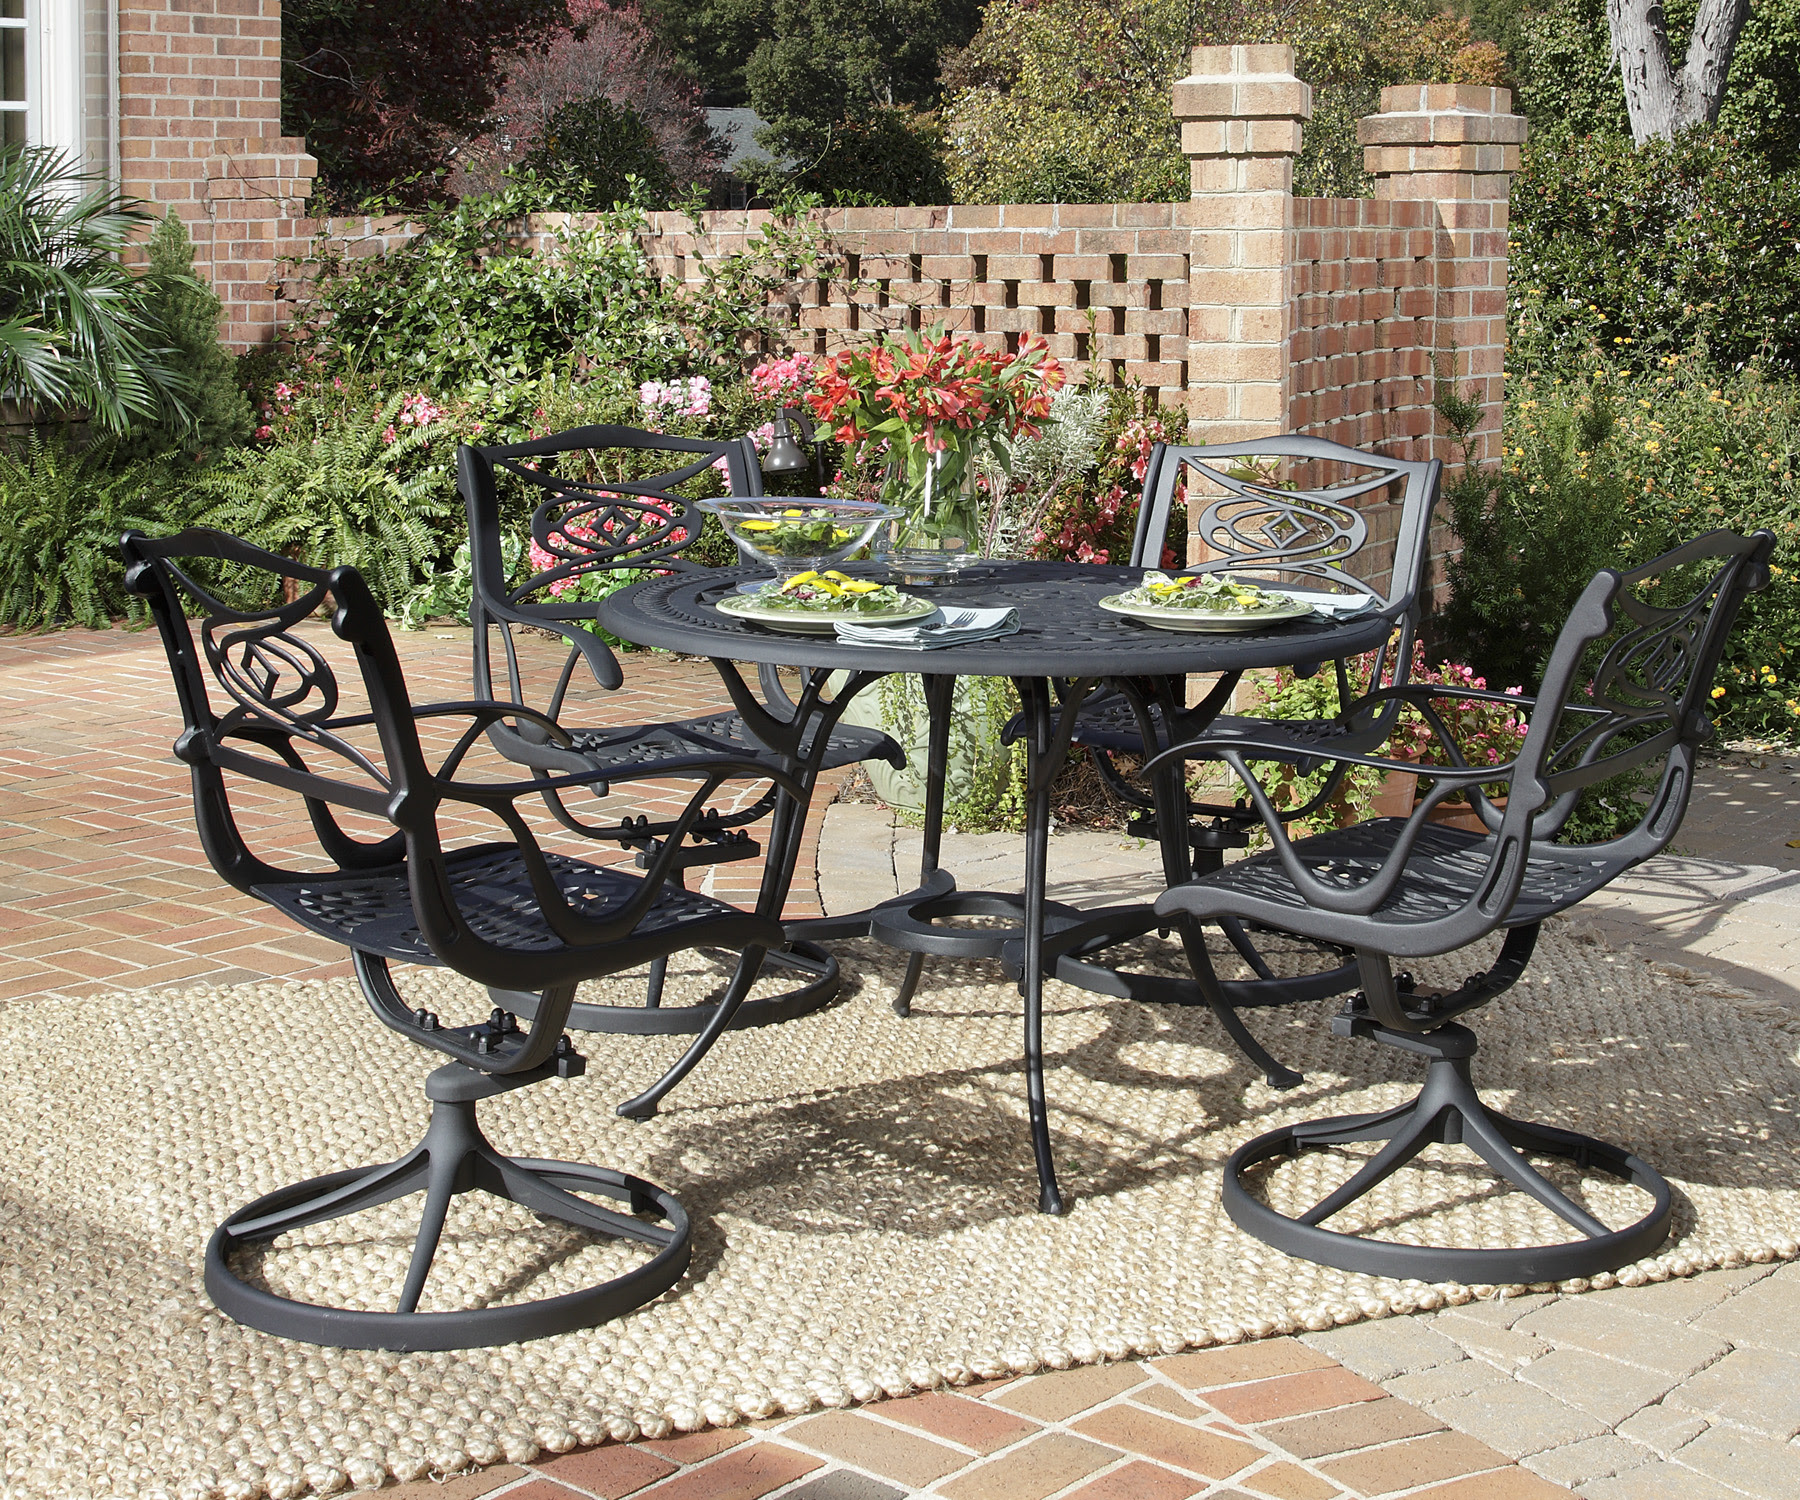 OUTDOOR DINING TABLE CHAIRS   Chair Pads & Cushions